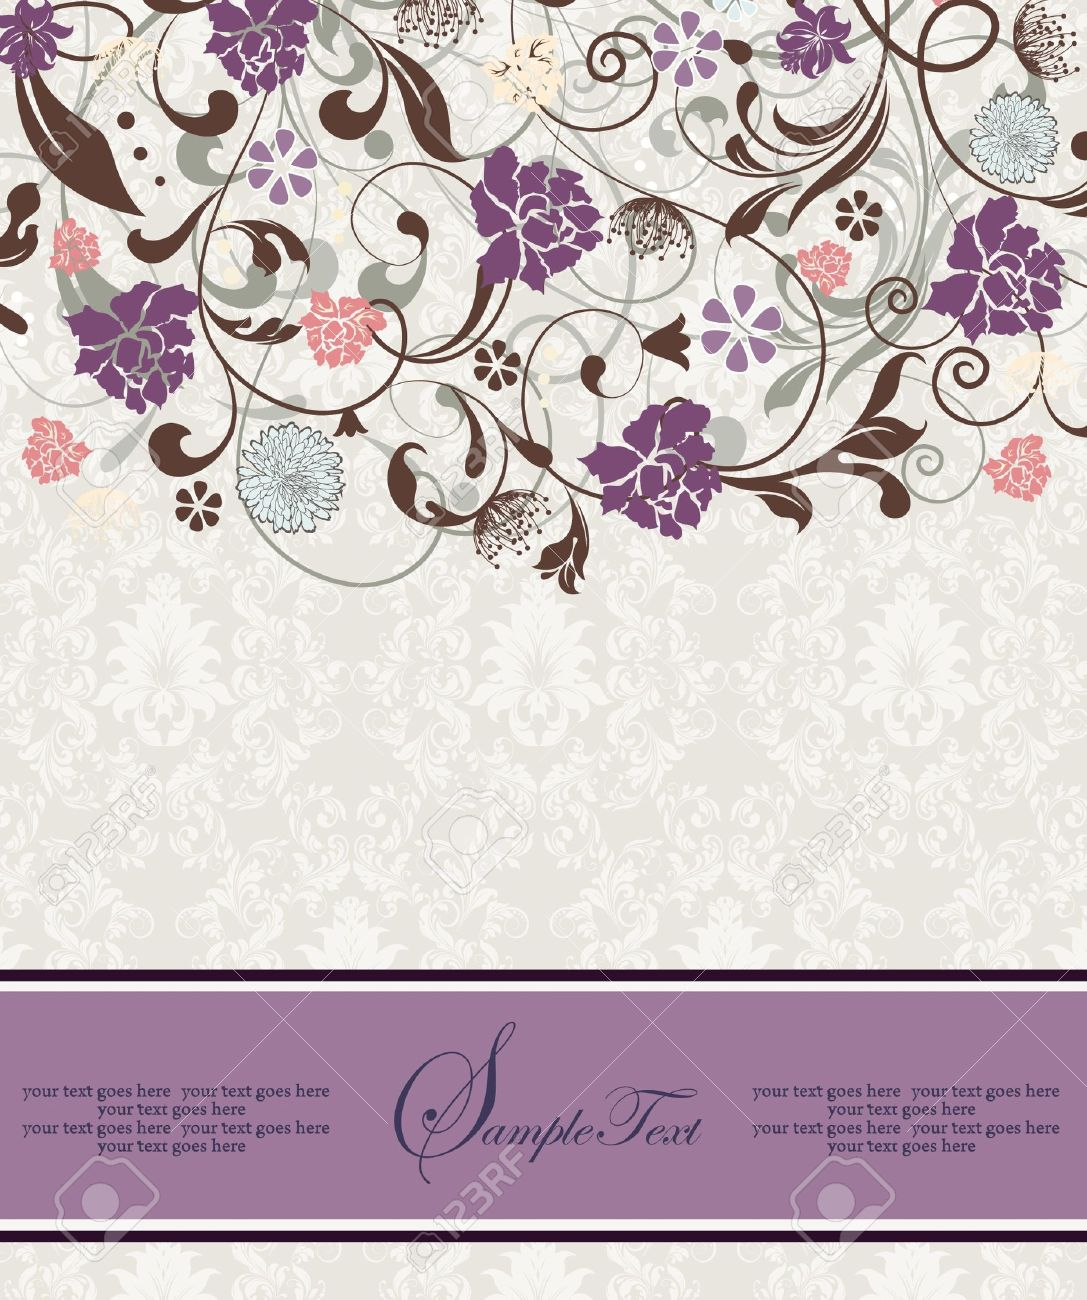 bridal shower invitation with purple flowers royalty free cliparts, Bridal shower invitations